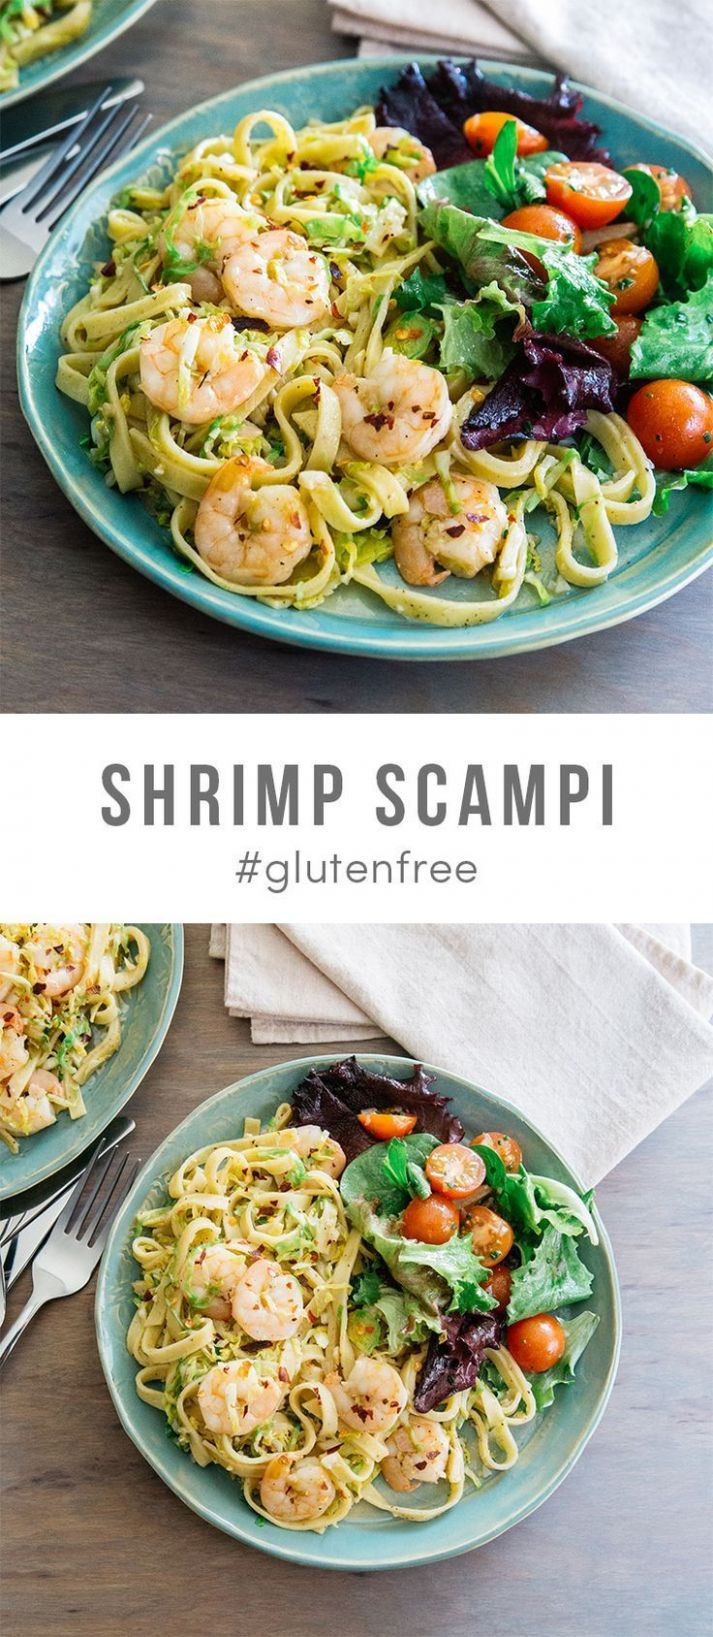 Shrimp Scampi for a dinner party - it's a major hit! | Dinner ...